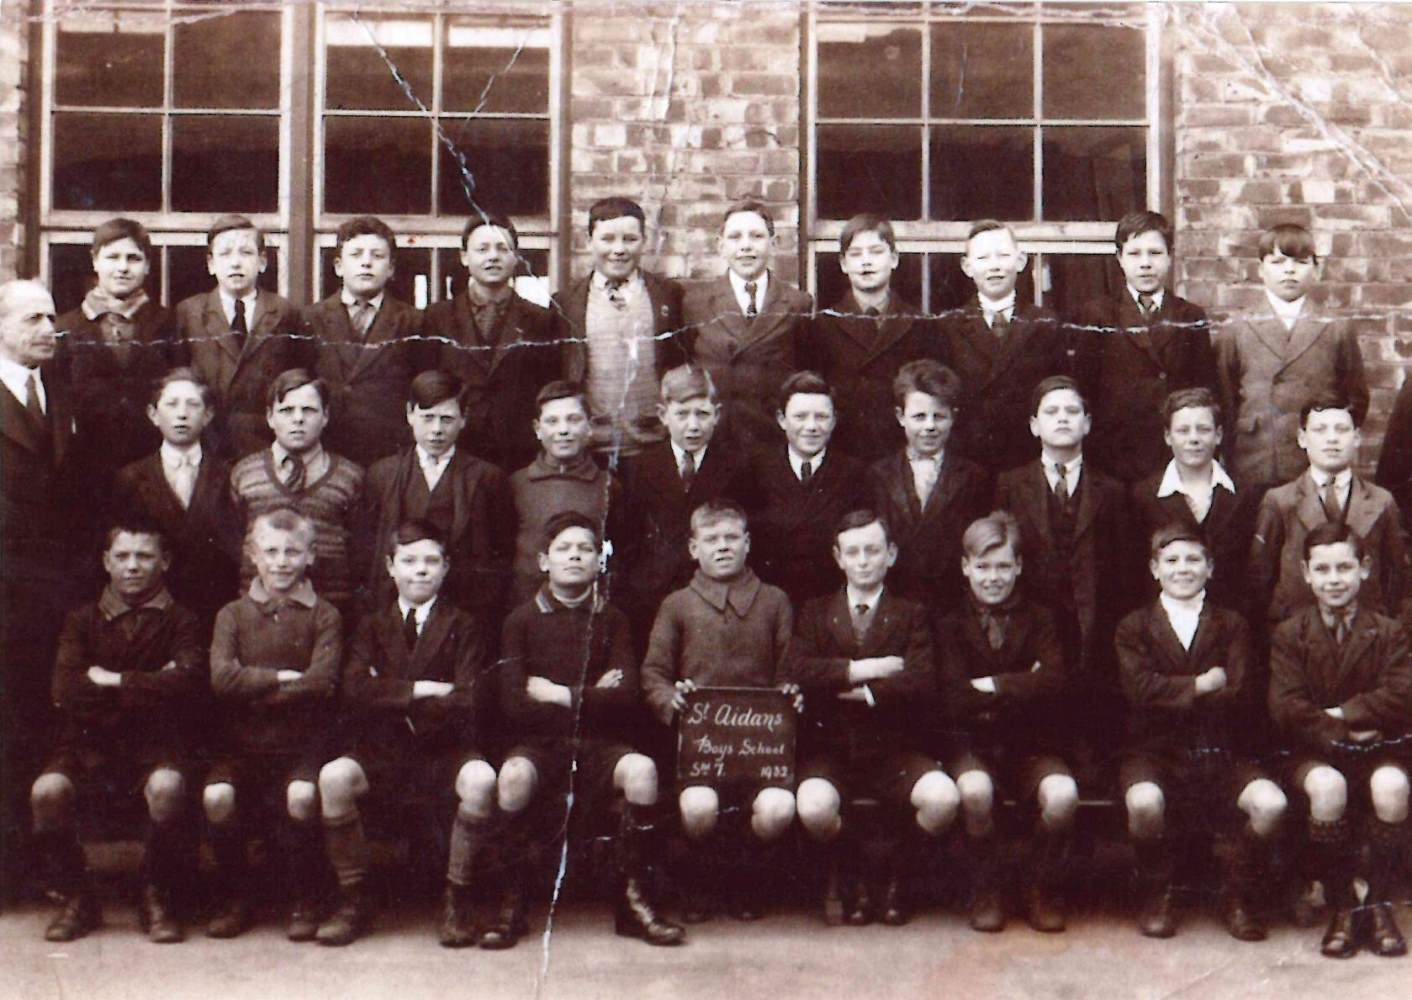 10 retro photos from St Aidans CE Primary School - from